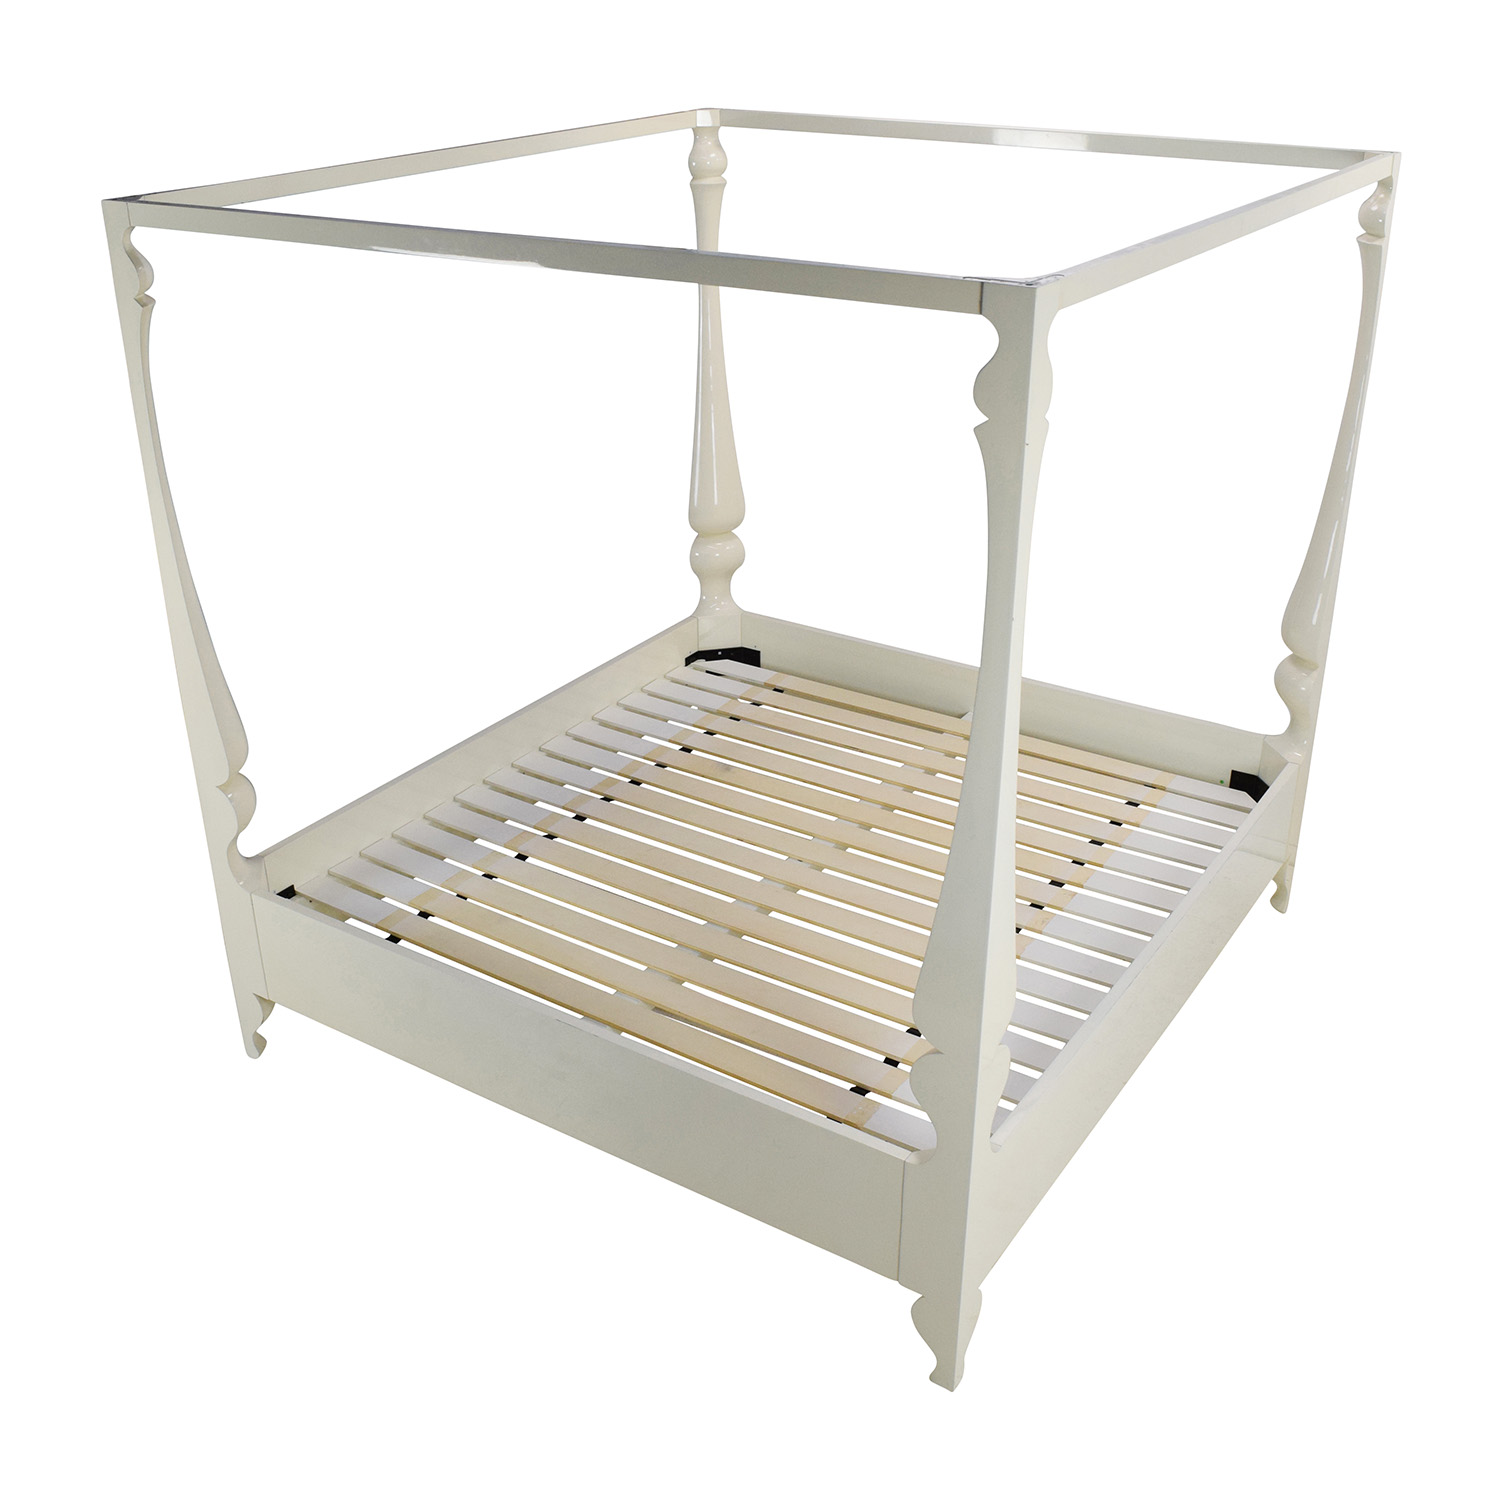 King Size Four Poster Bed Frame 85 Off John Reeves Louis Four Poster King Bed Frame Beds